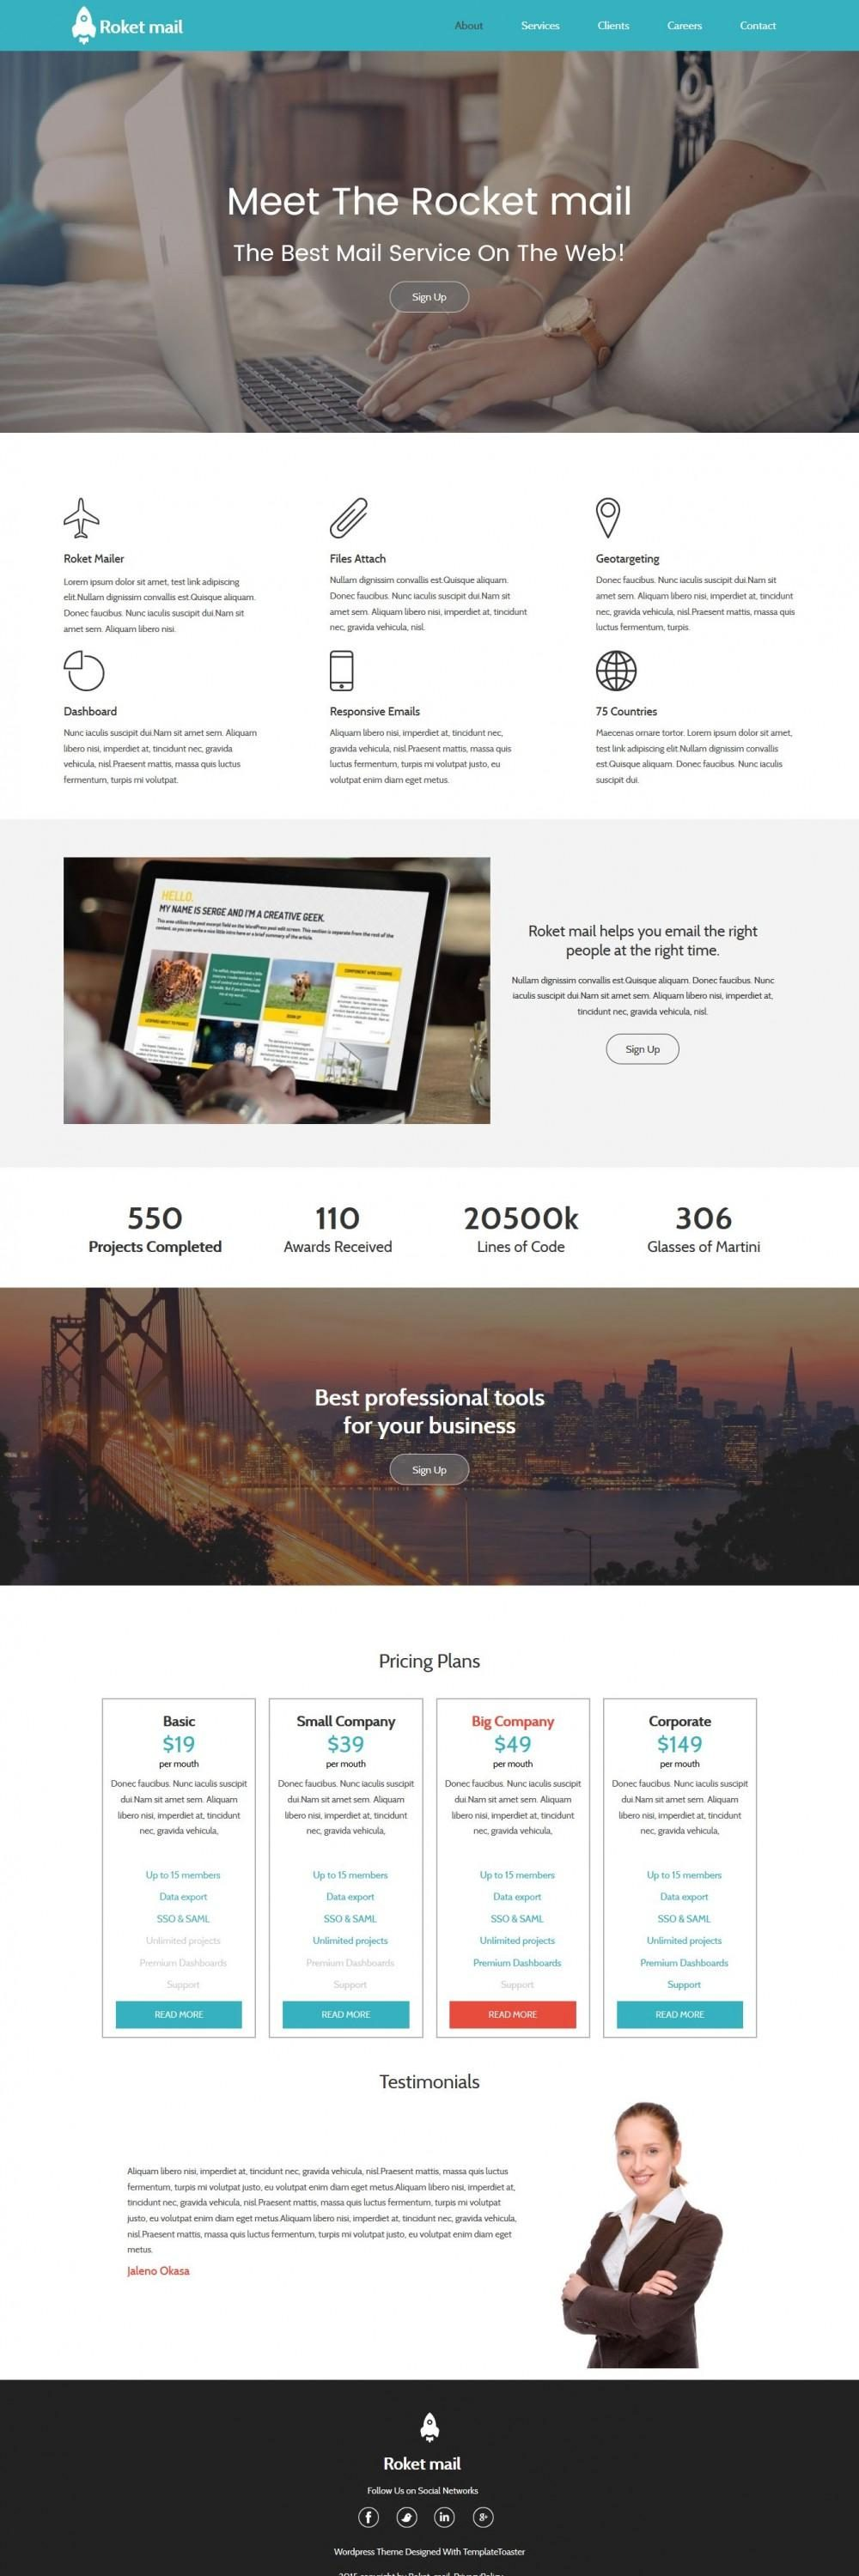 Roket Mail - Free WordPress Theme For Mail Service Agencies